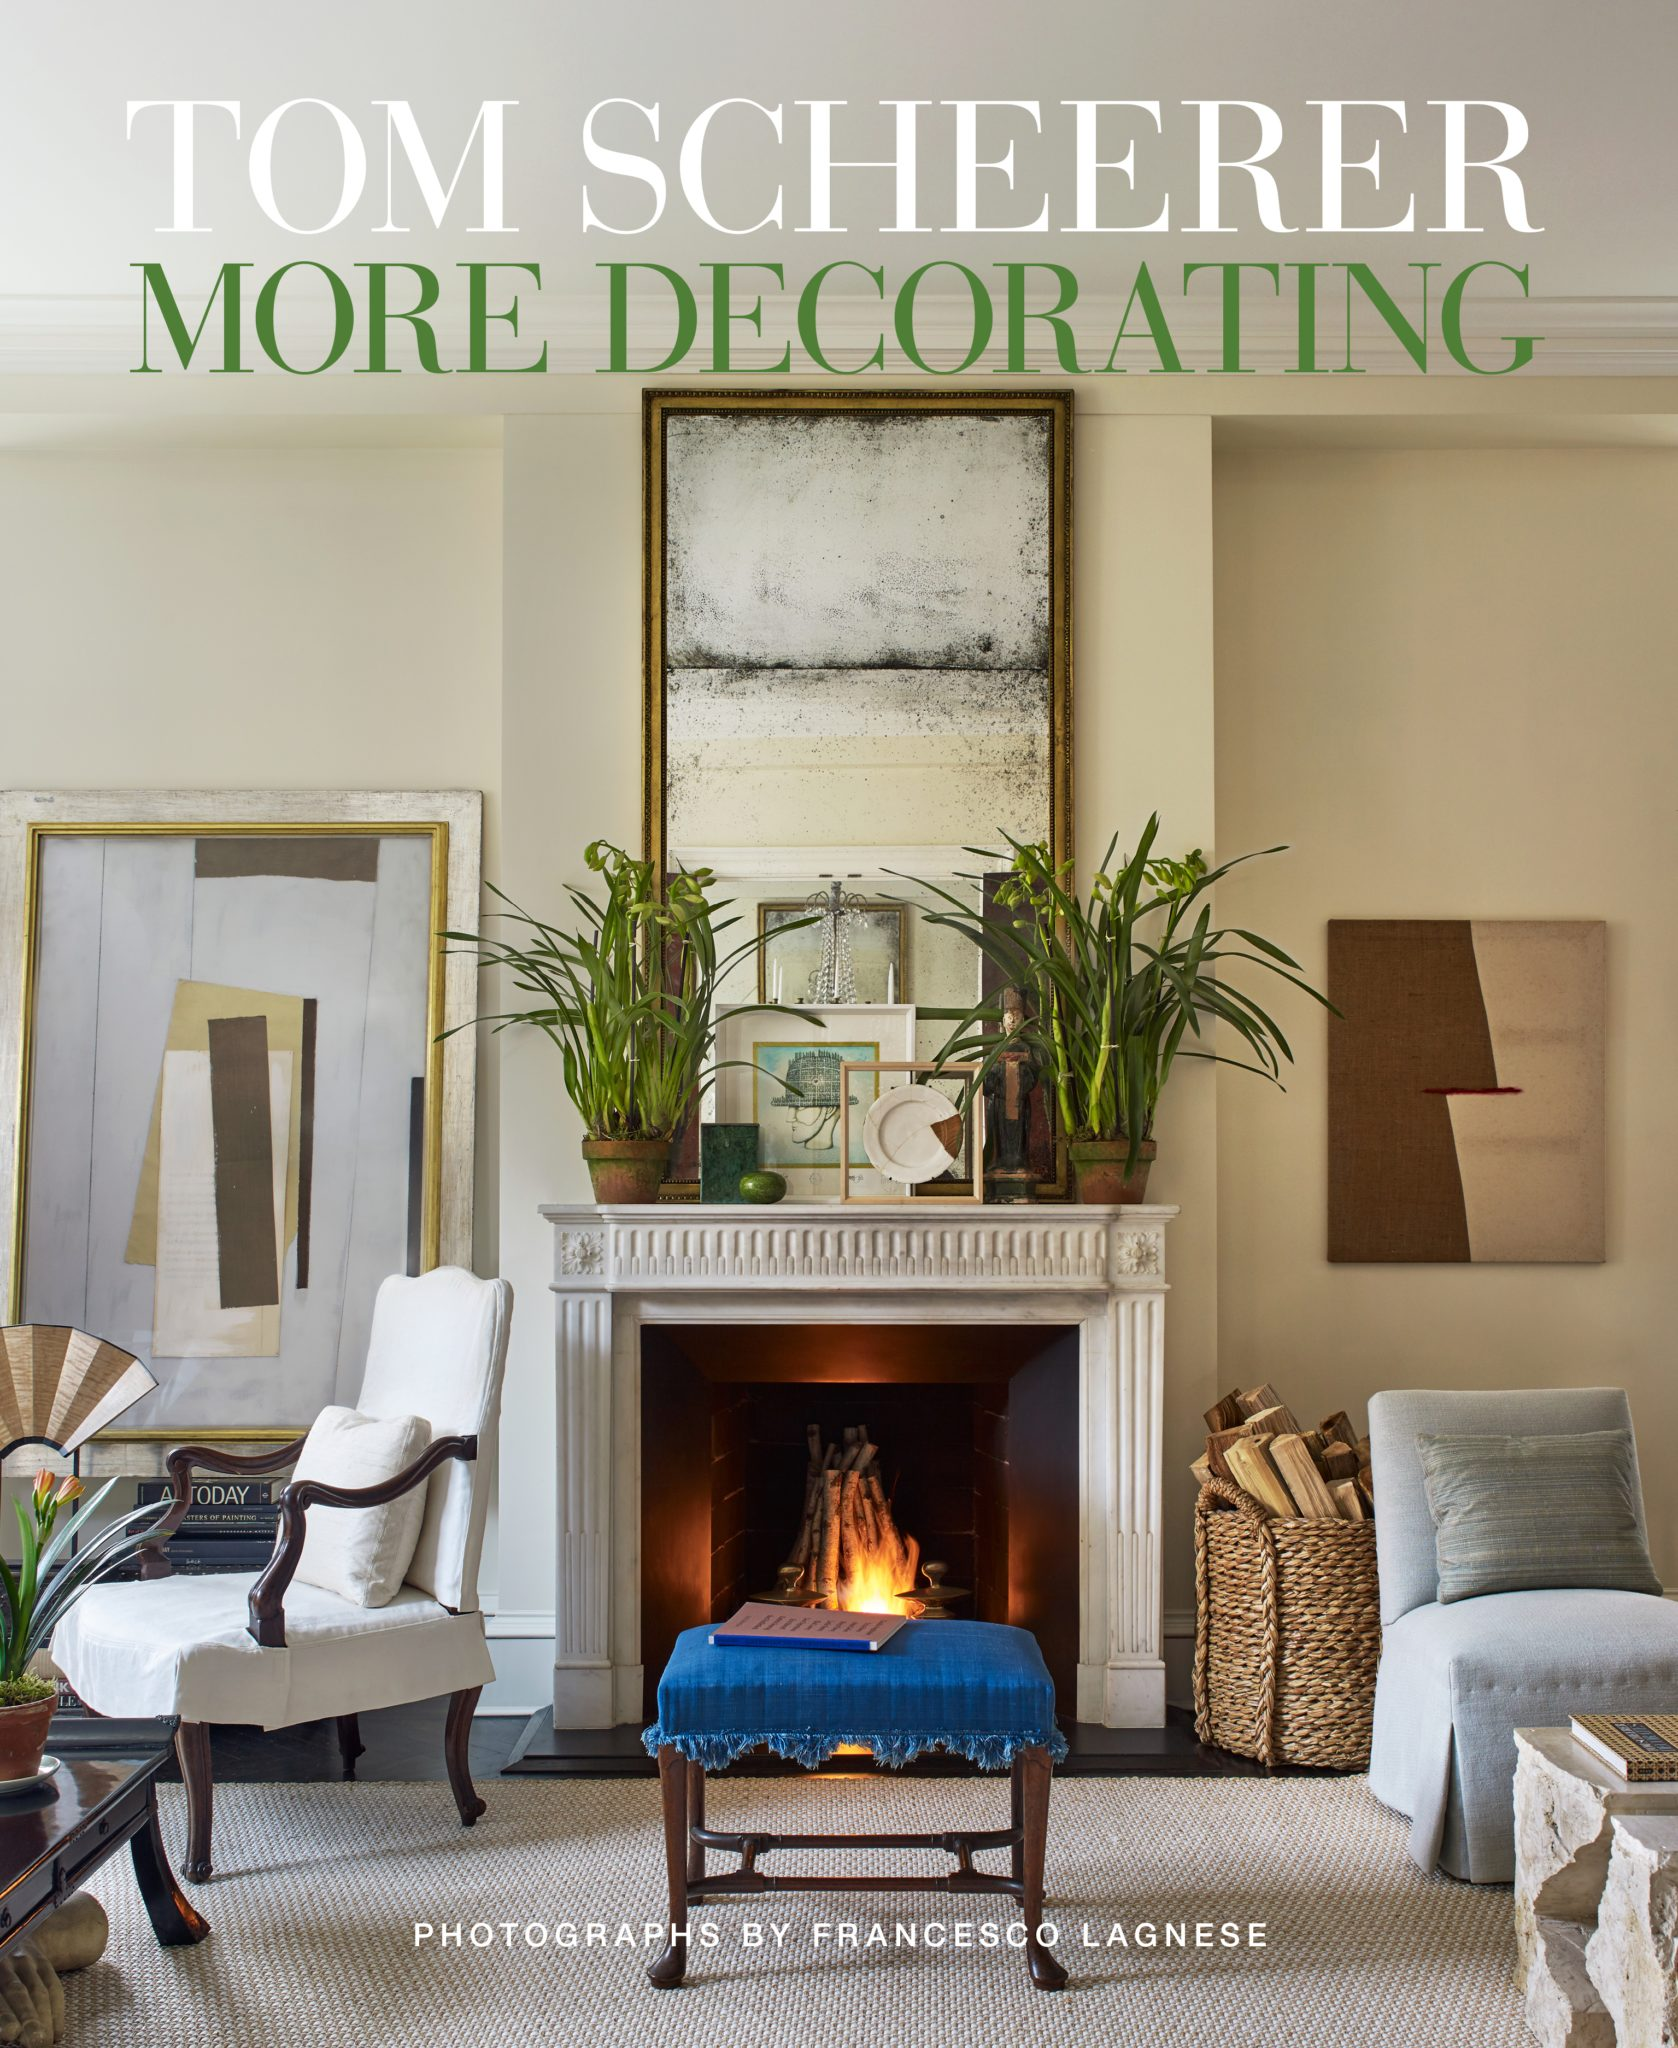 The cover of the designer's latest book, More Decorating, published by Vendome.